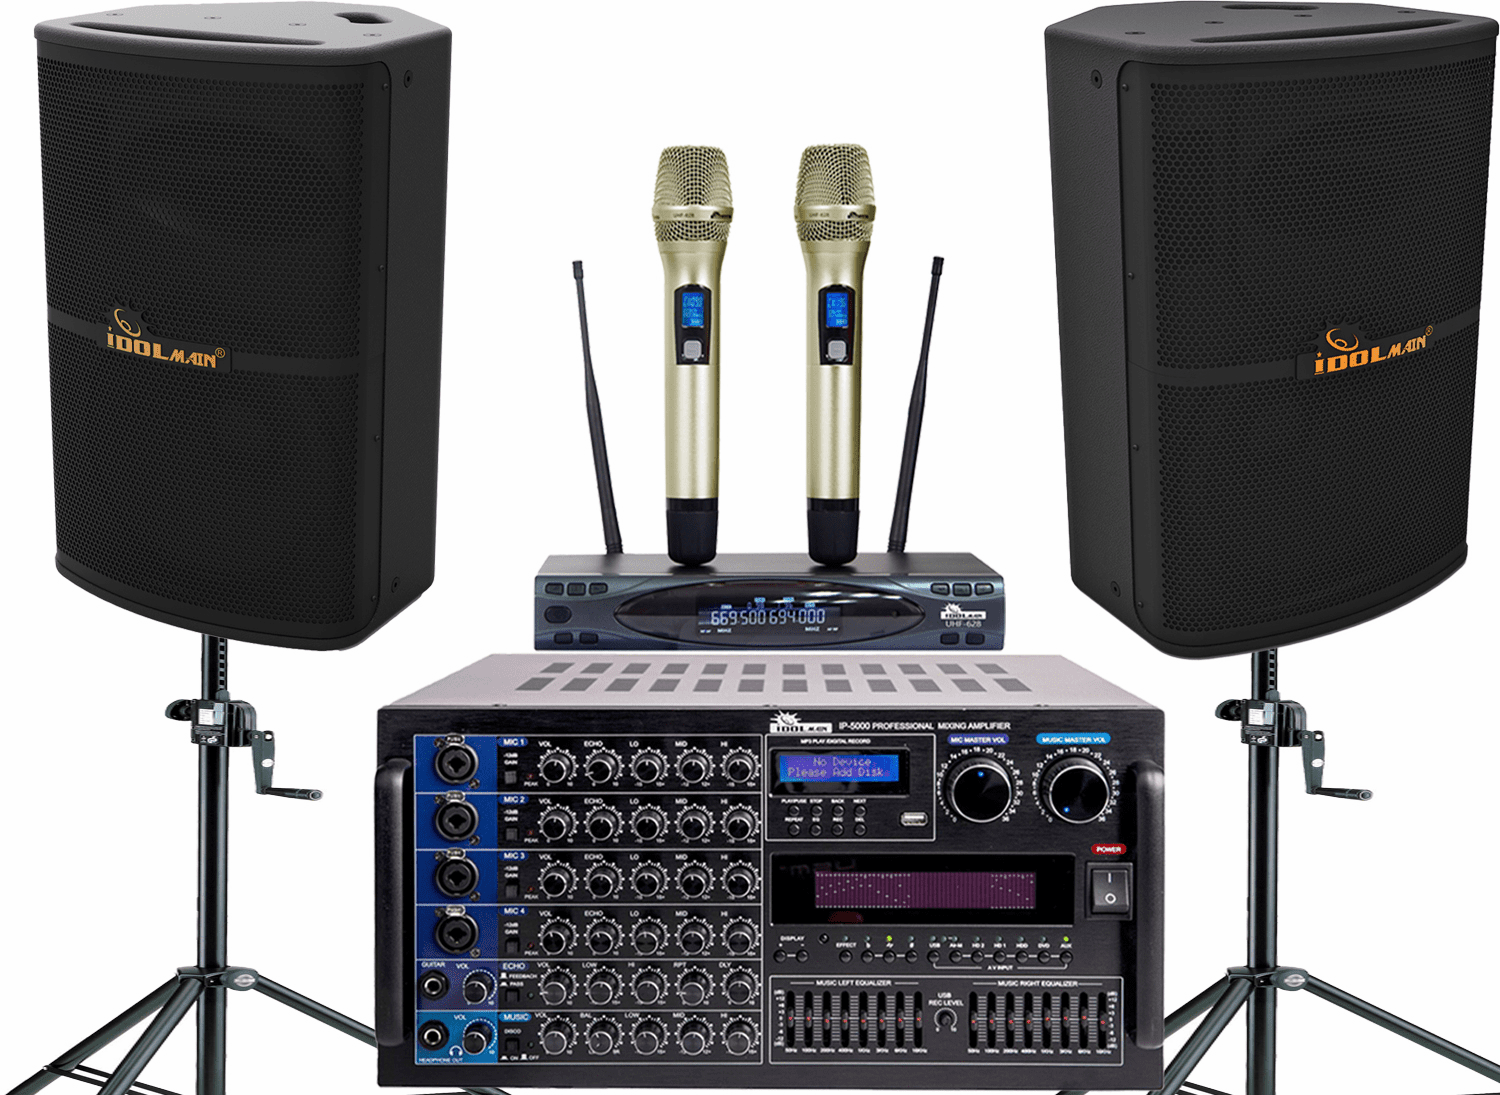 "<font color="" blue"">PACKAGE 5 </font>--IPS-P10 Speakers & UHF-618 Microphone & IP-5000 Mixing Amplifier"